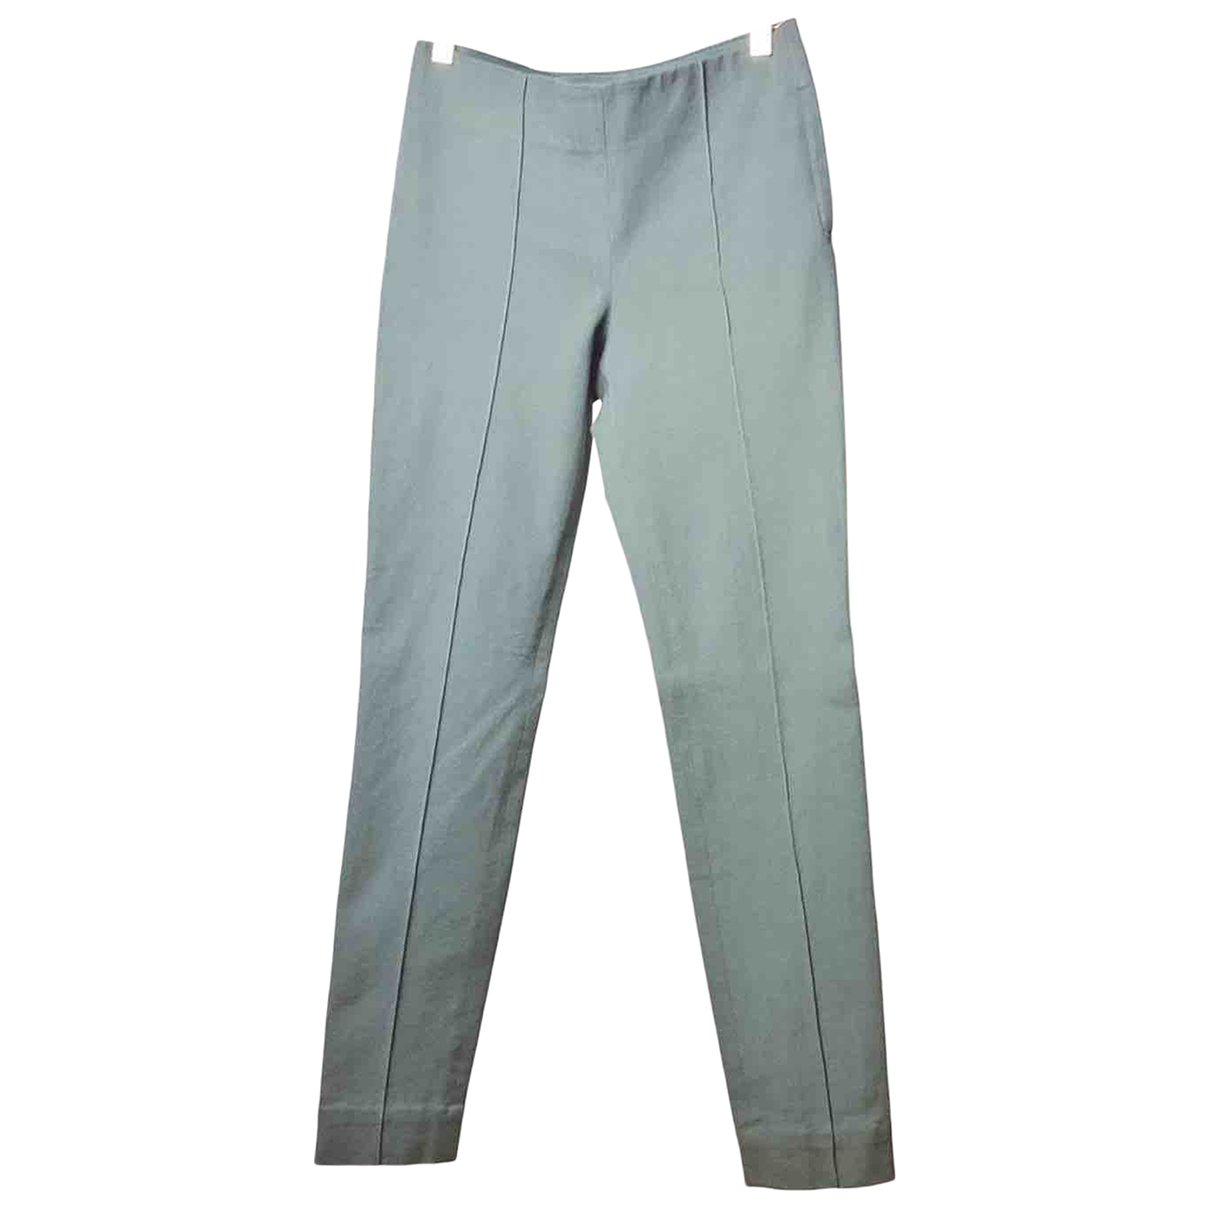 Cos \N Green Cotton Trousers for Women 34 FR